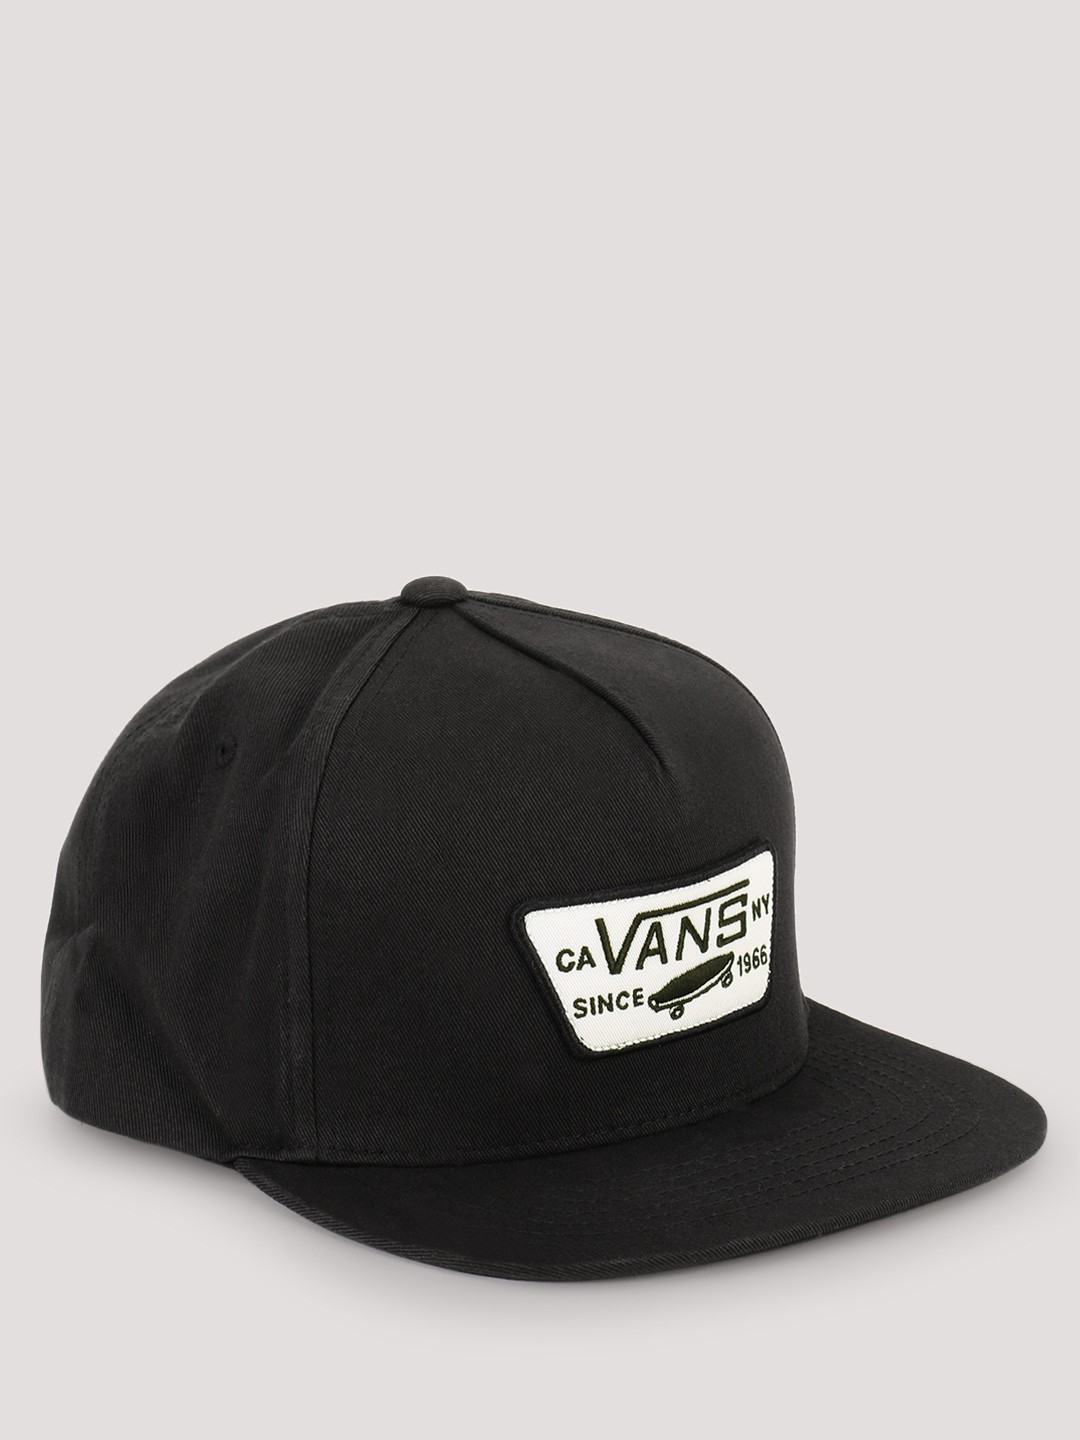 Buy Hats and Caps Online at best prices in India on Snapdeal. Shop wide range of mens caps, hats from top brands. Get Free Shipping & CoD options across India. Buy Hats and Caps Online at best prices in India on Snapdeal. Shop wide range of mens caps, hats from top brands. Get Free Shipping & CoD options across India.